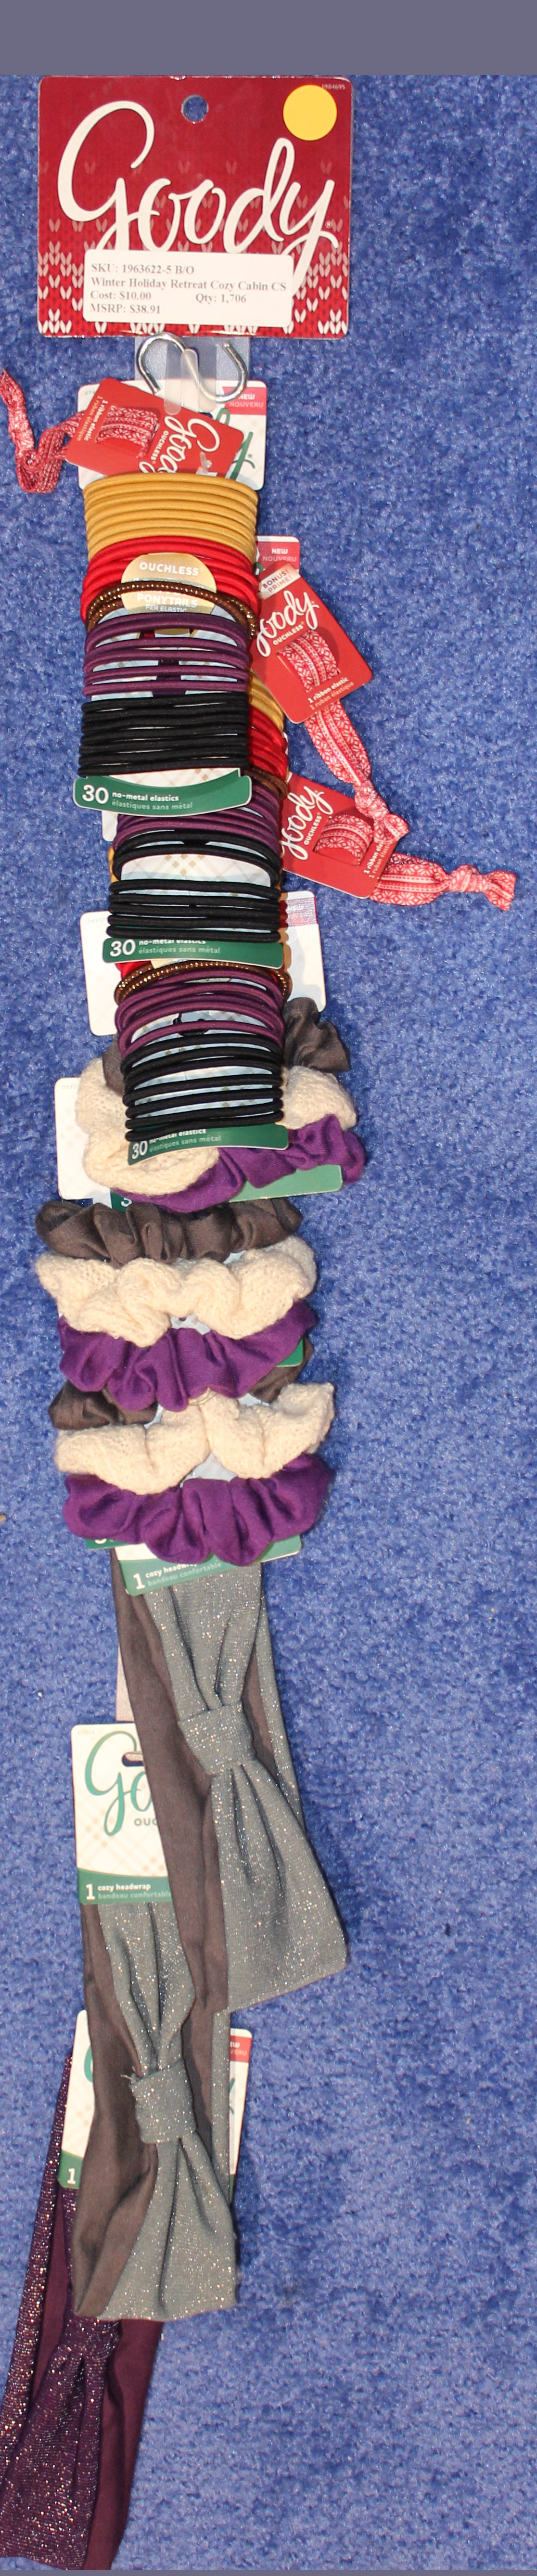 Goody Winter Elastics, Scrunchies, and Headwraps 9 Piece Clip Strip Assortment